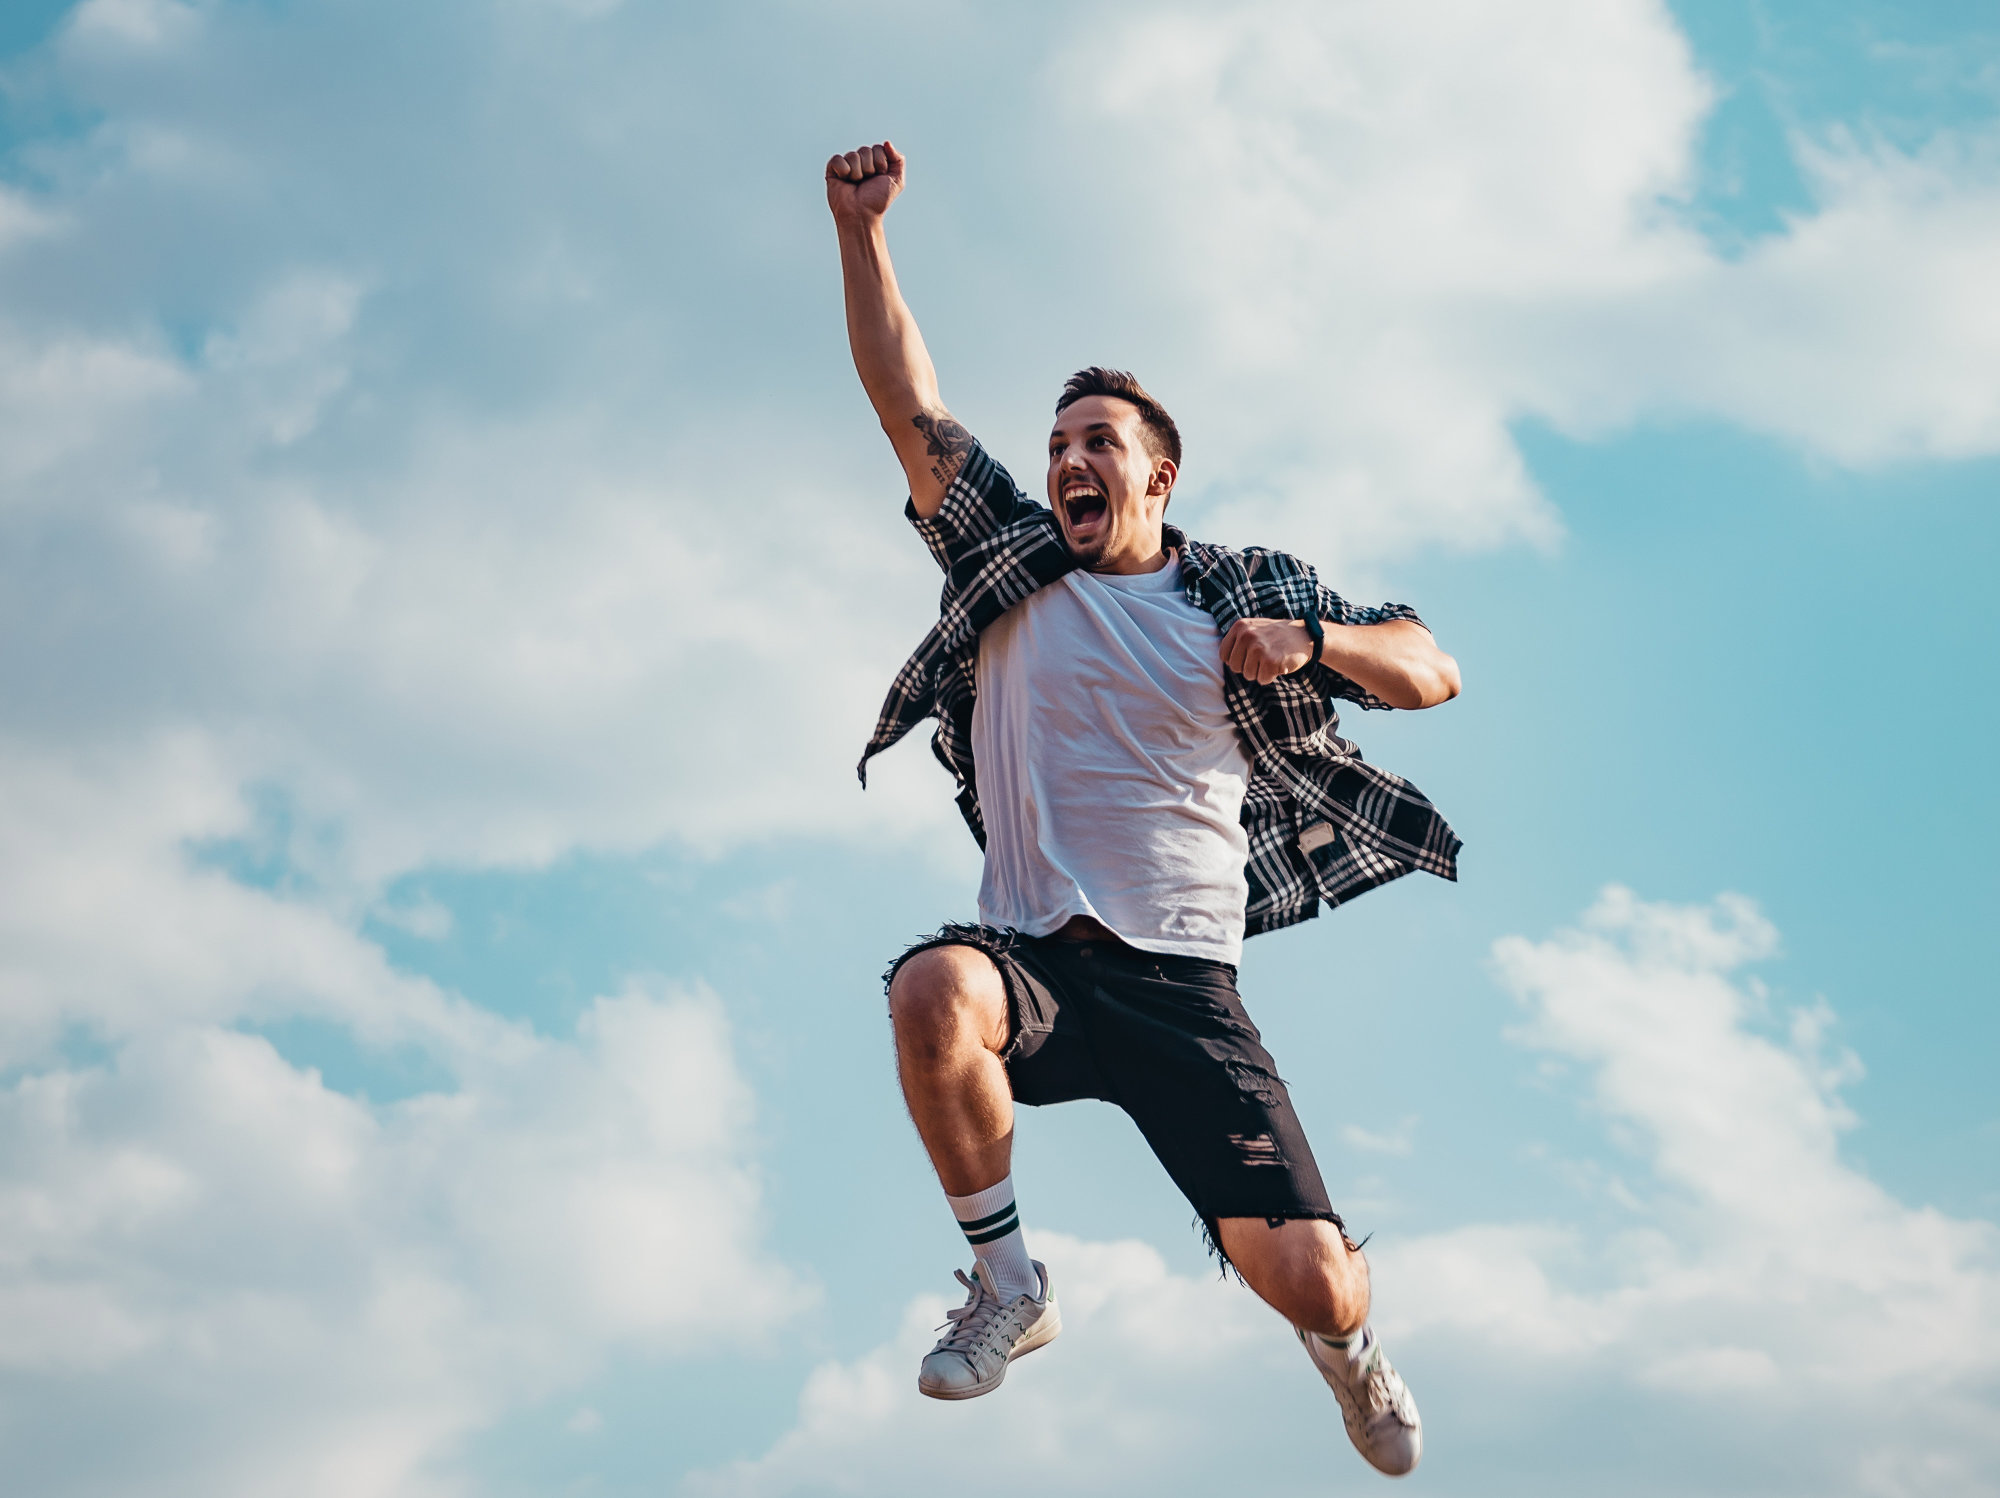 man jumping with fist in the air